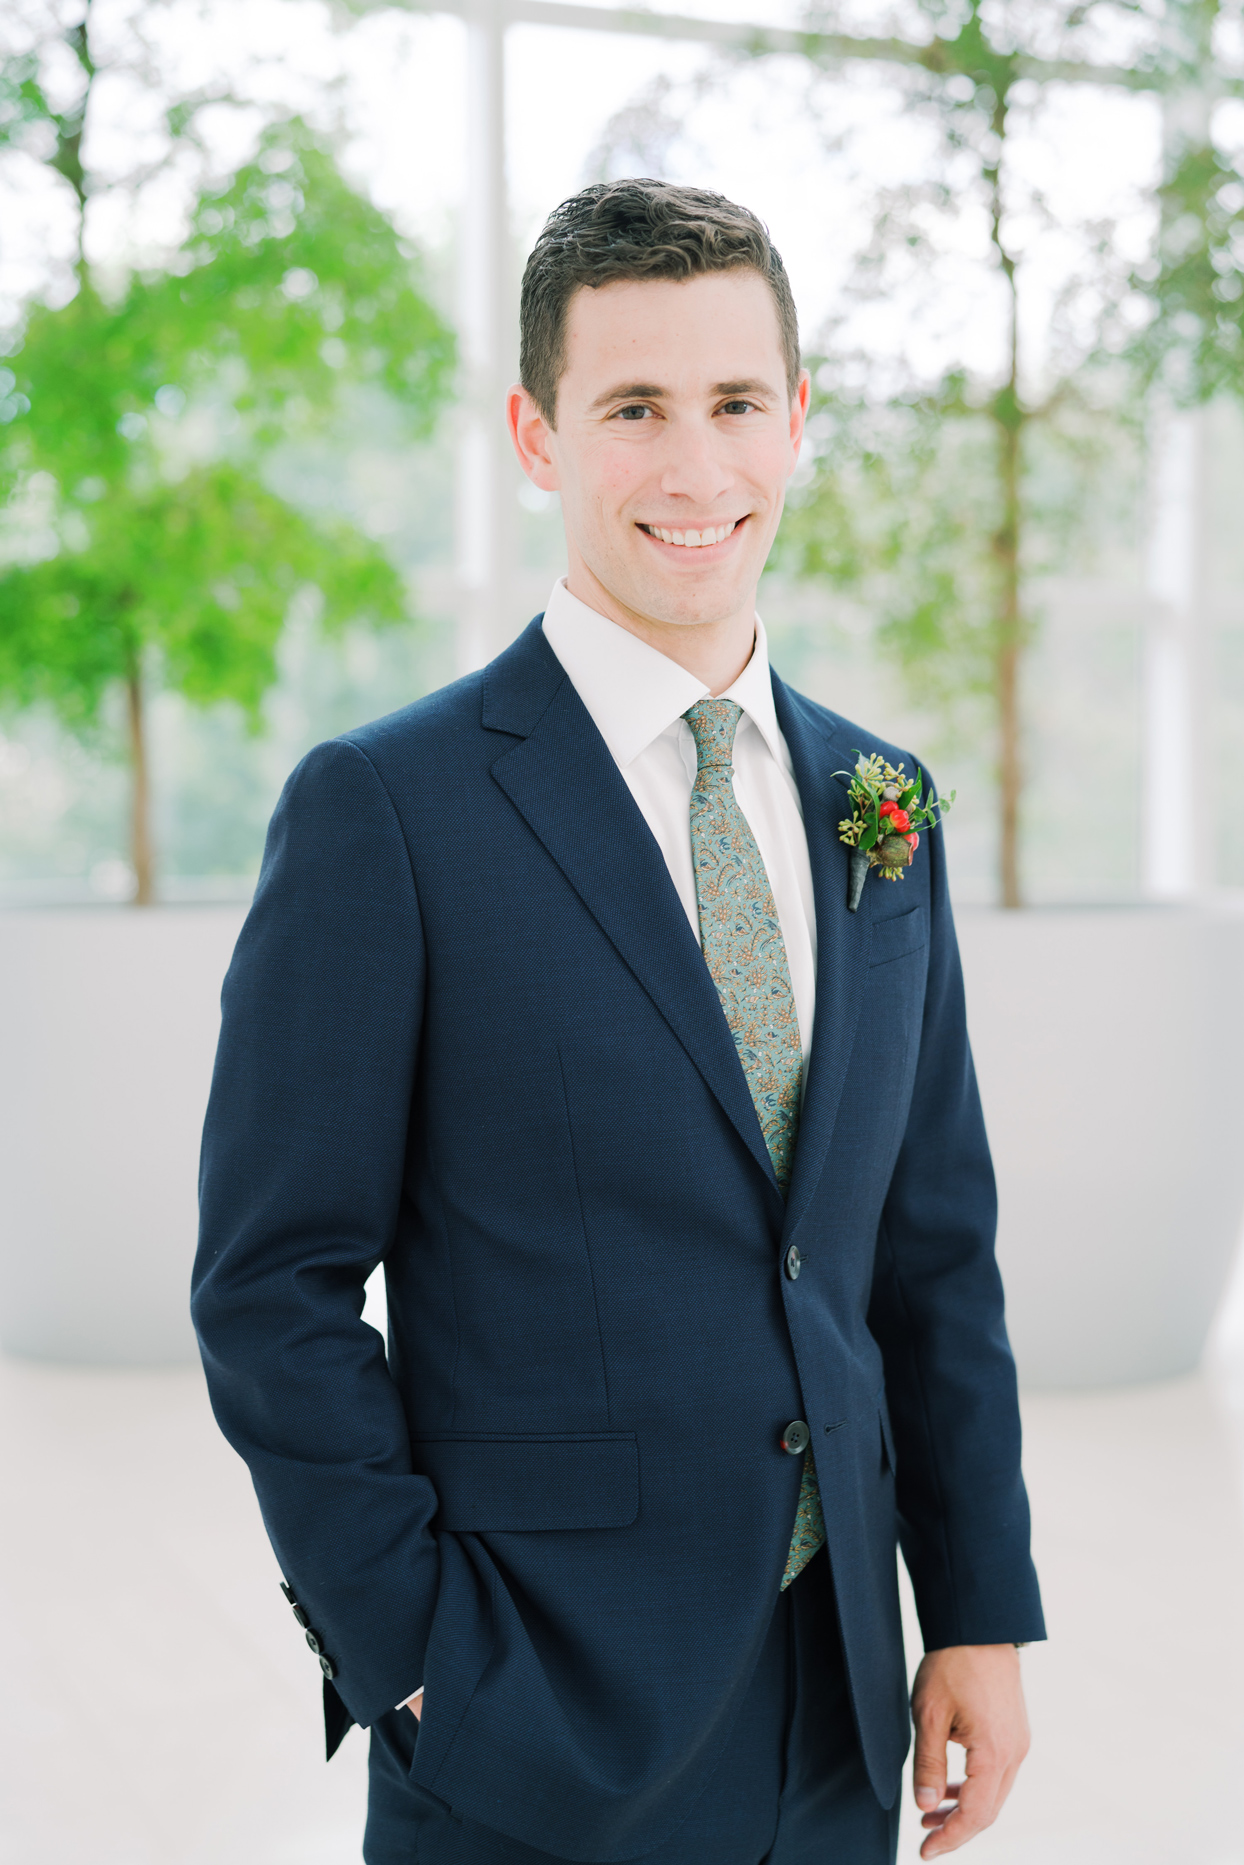 groom wearing navy blue suit with green printed tie